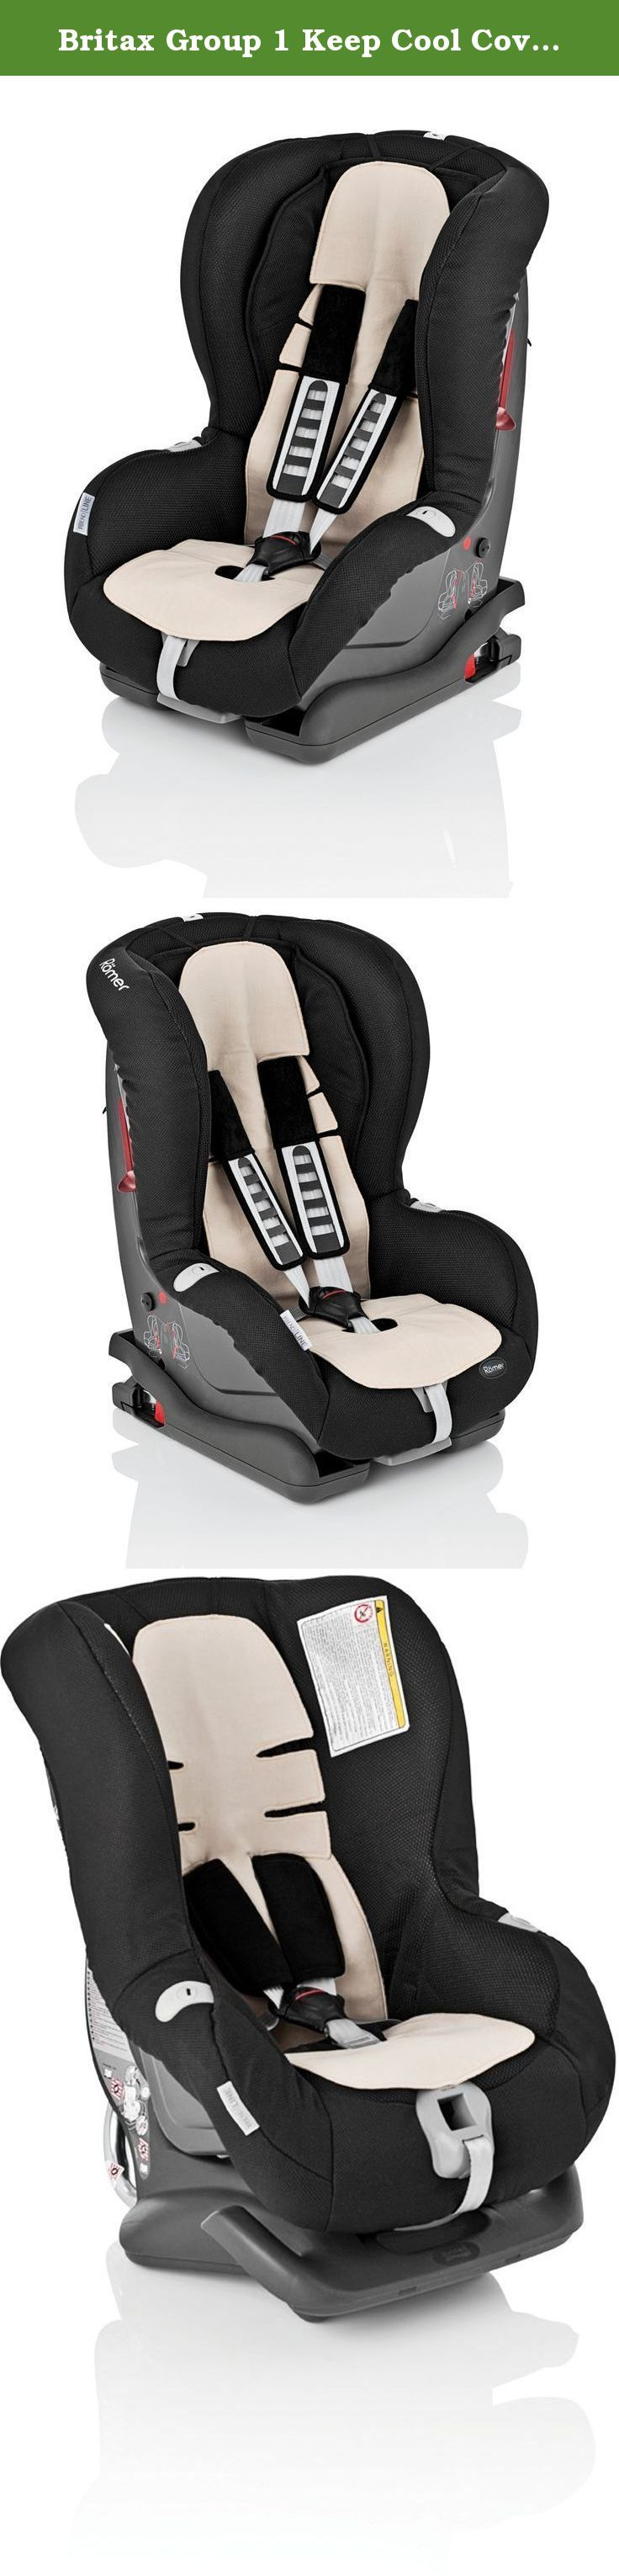 Britax Group 1 Keep Cool Cover with Outlast technology for Britax Prince/Eclipse/King Plus/Duo Plus/Safefix Plus/Safefix Plus TT. The Keep Cool Cover with Outlast Technology keeps your toddler at just the right temperature The Keep Cool Cover is structured to take in and store excess heat.